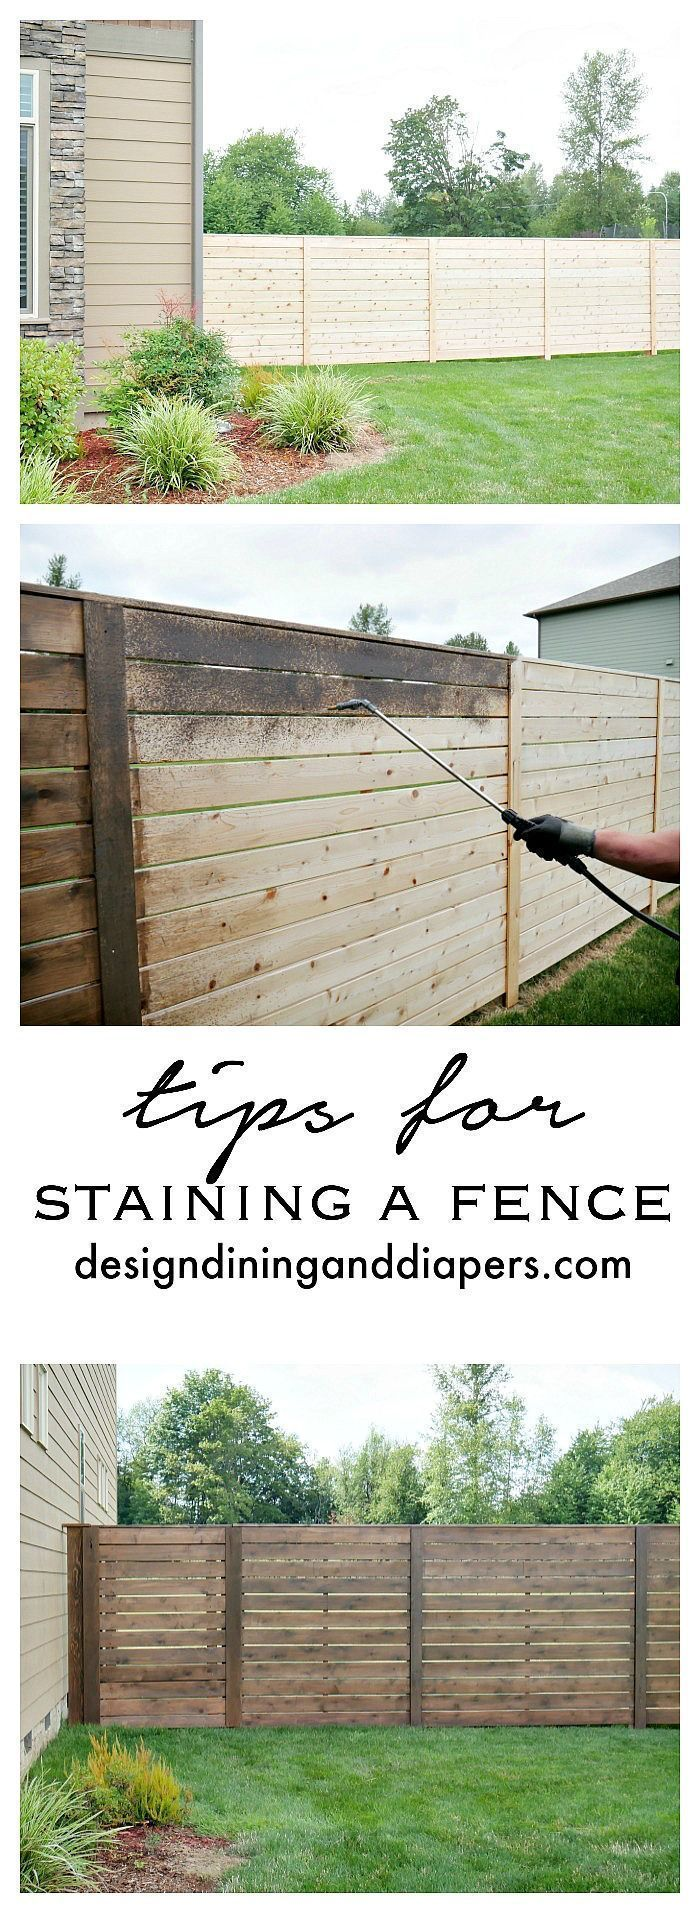 Cheapest way to stain a fence jaquar bathroom mixer